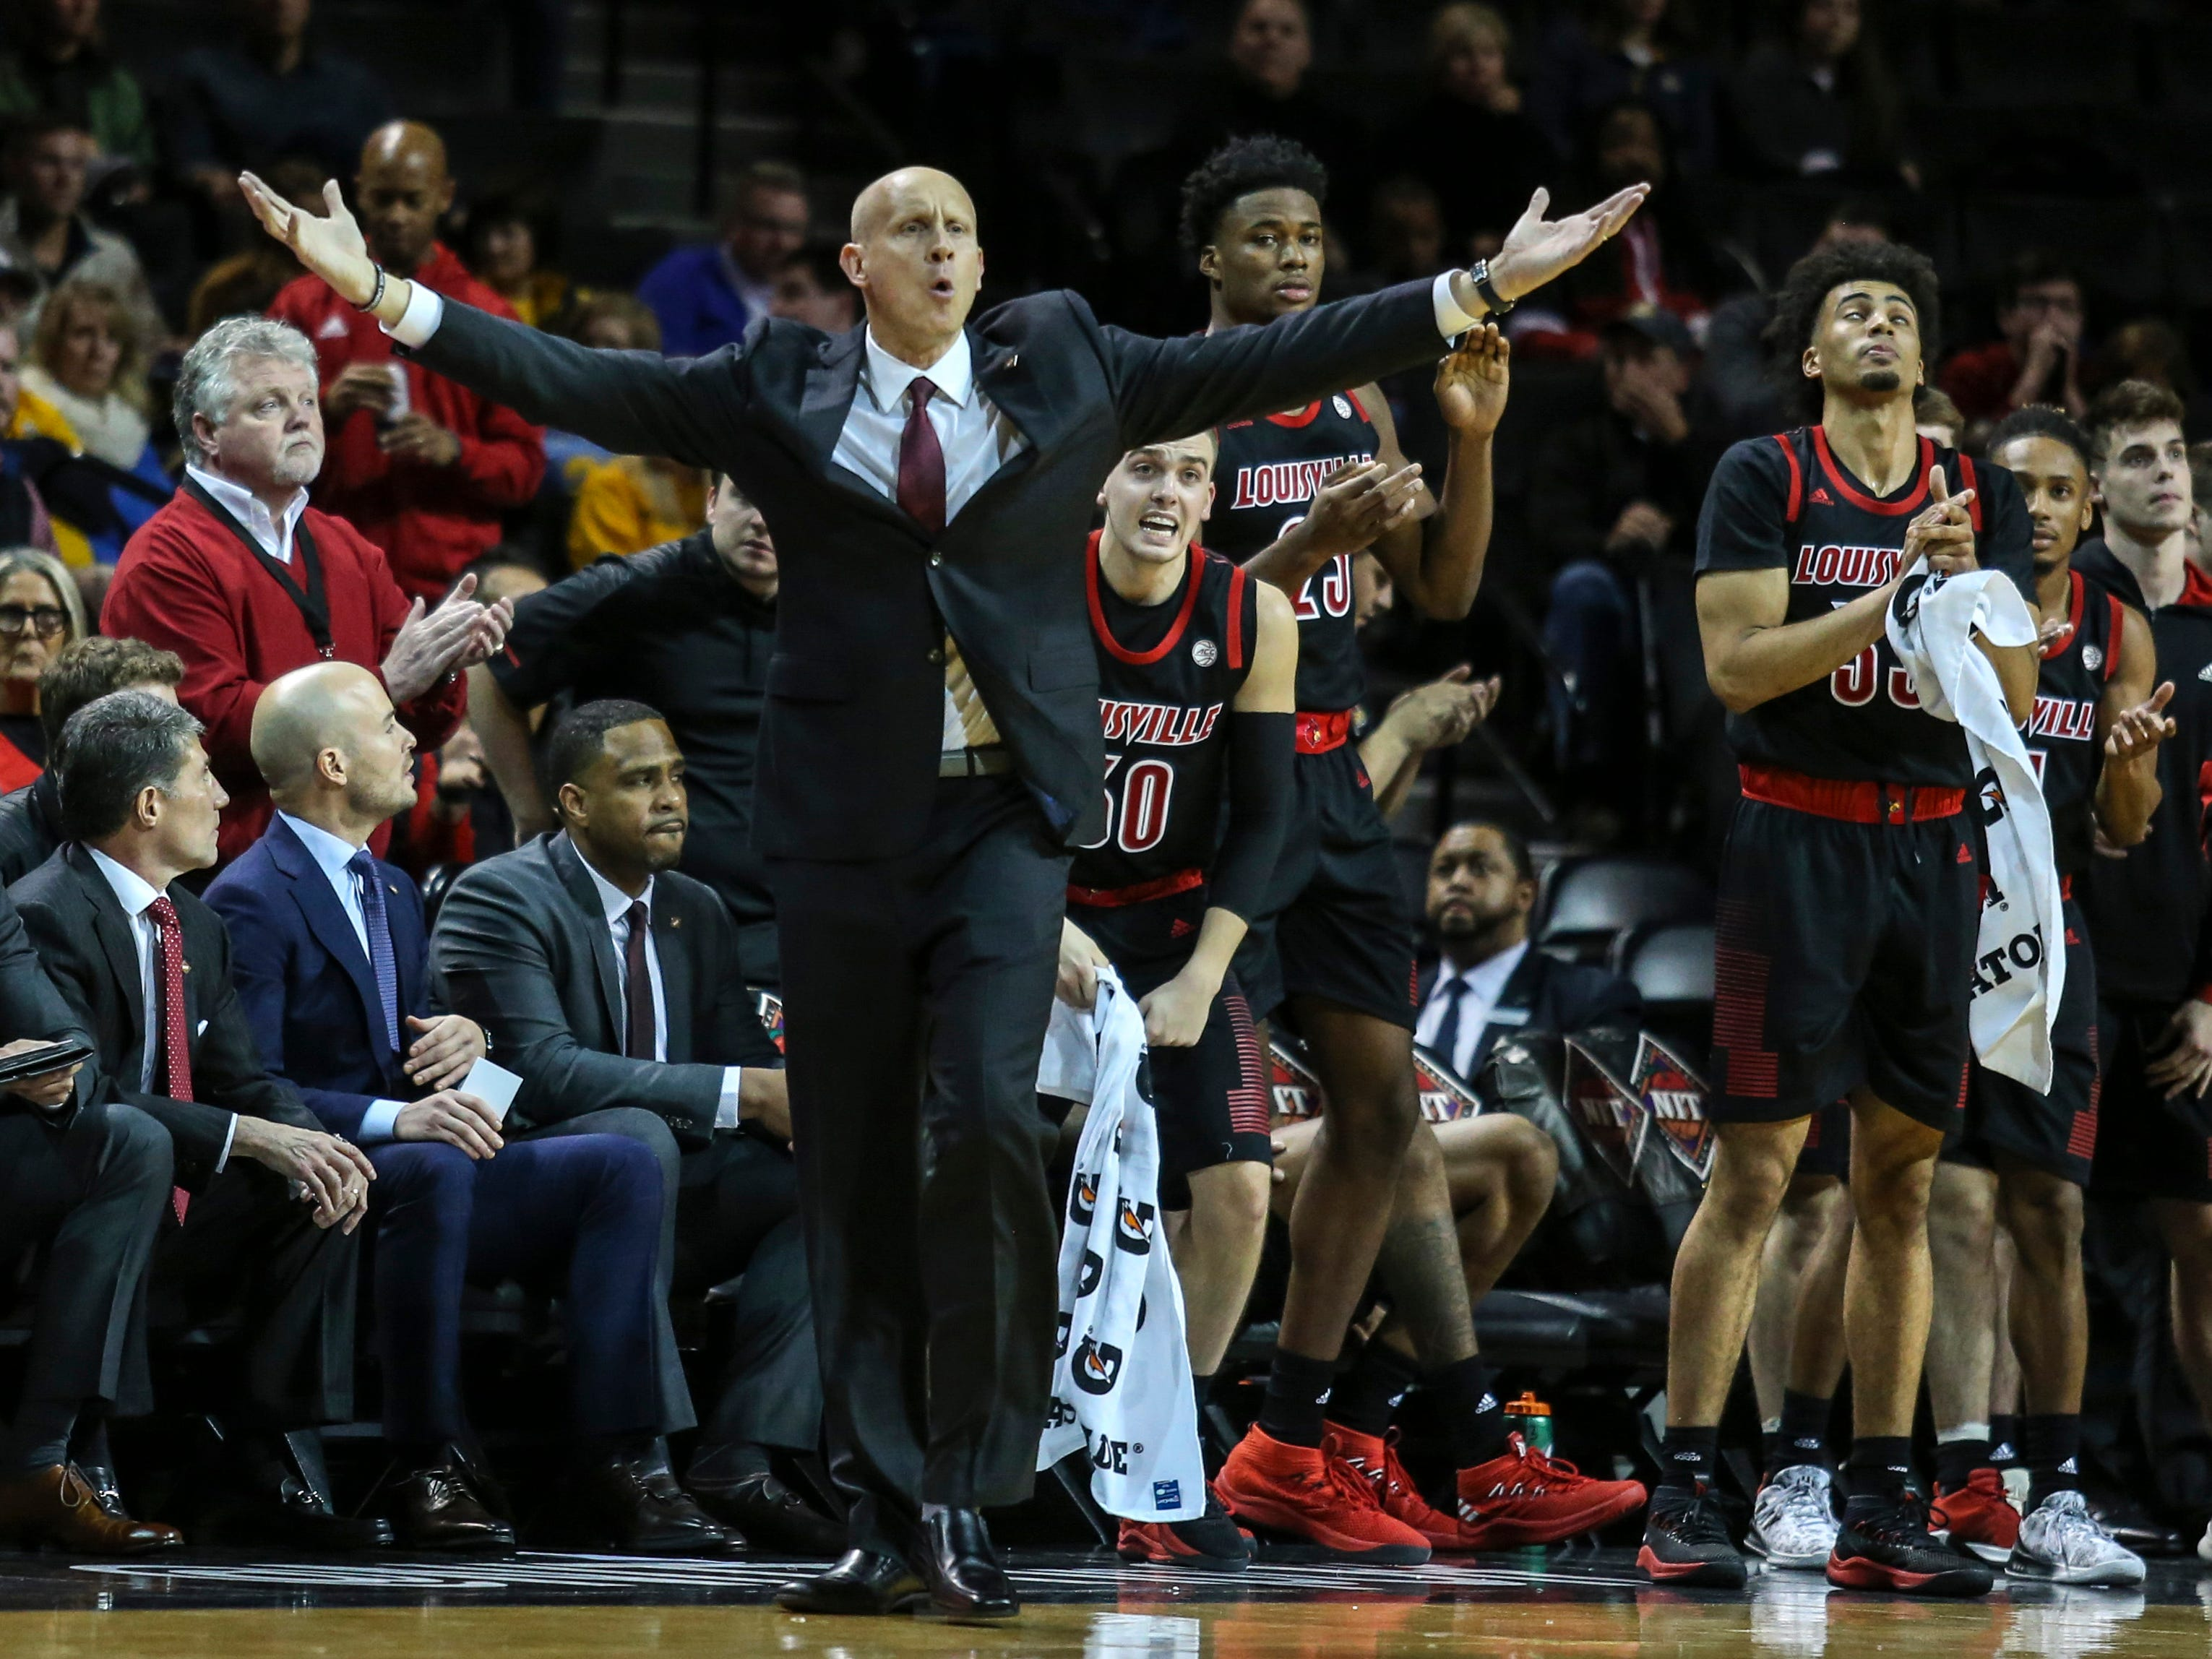 Nov 21, 2018; Brooklyn, NY, USA; Louisville Cardinals head coach Chris Mack reacts during a call against the Tennessee Volunteers in the second half during the NIT Tipoff at Barclays Center. Mandatory Credit: Wendell Cruz-USA TODAY Sports